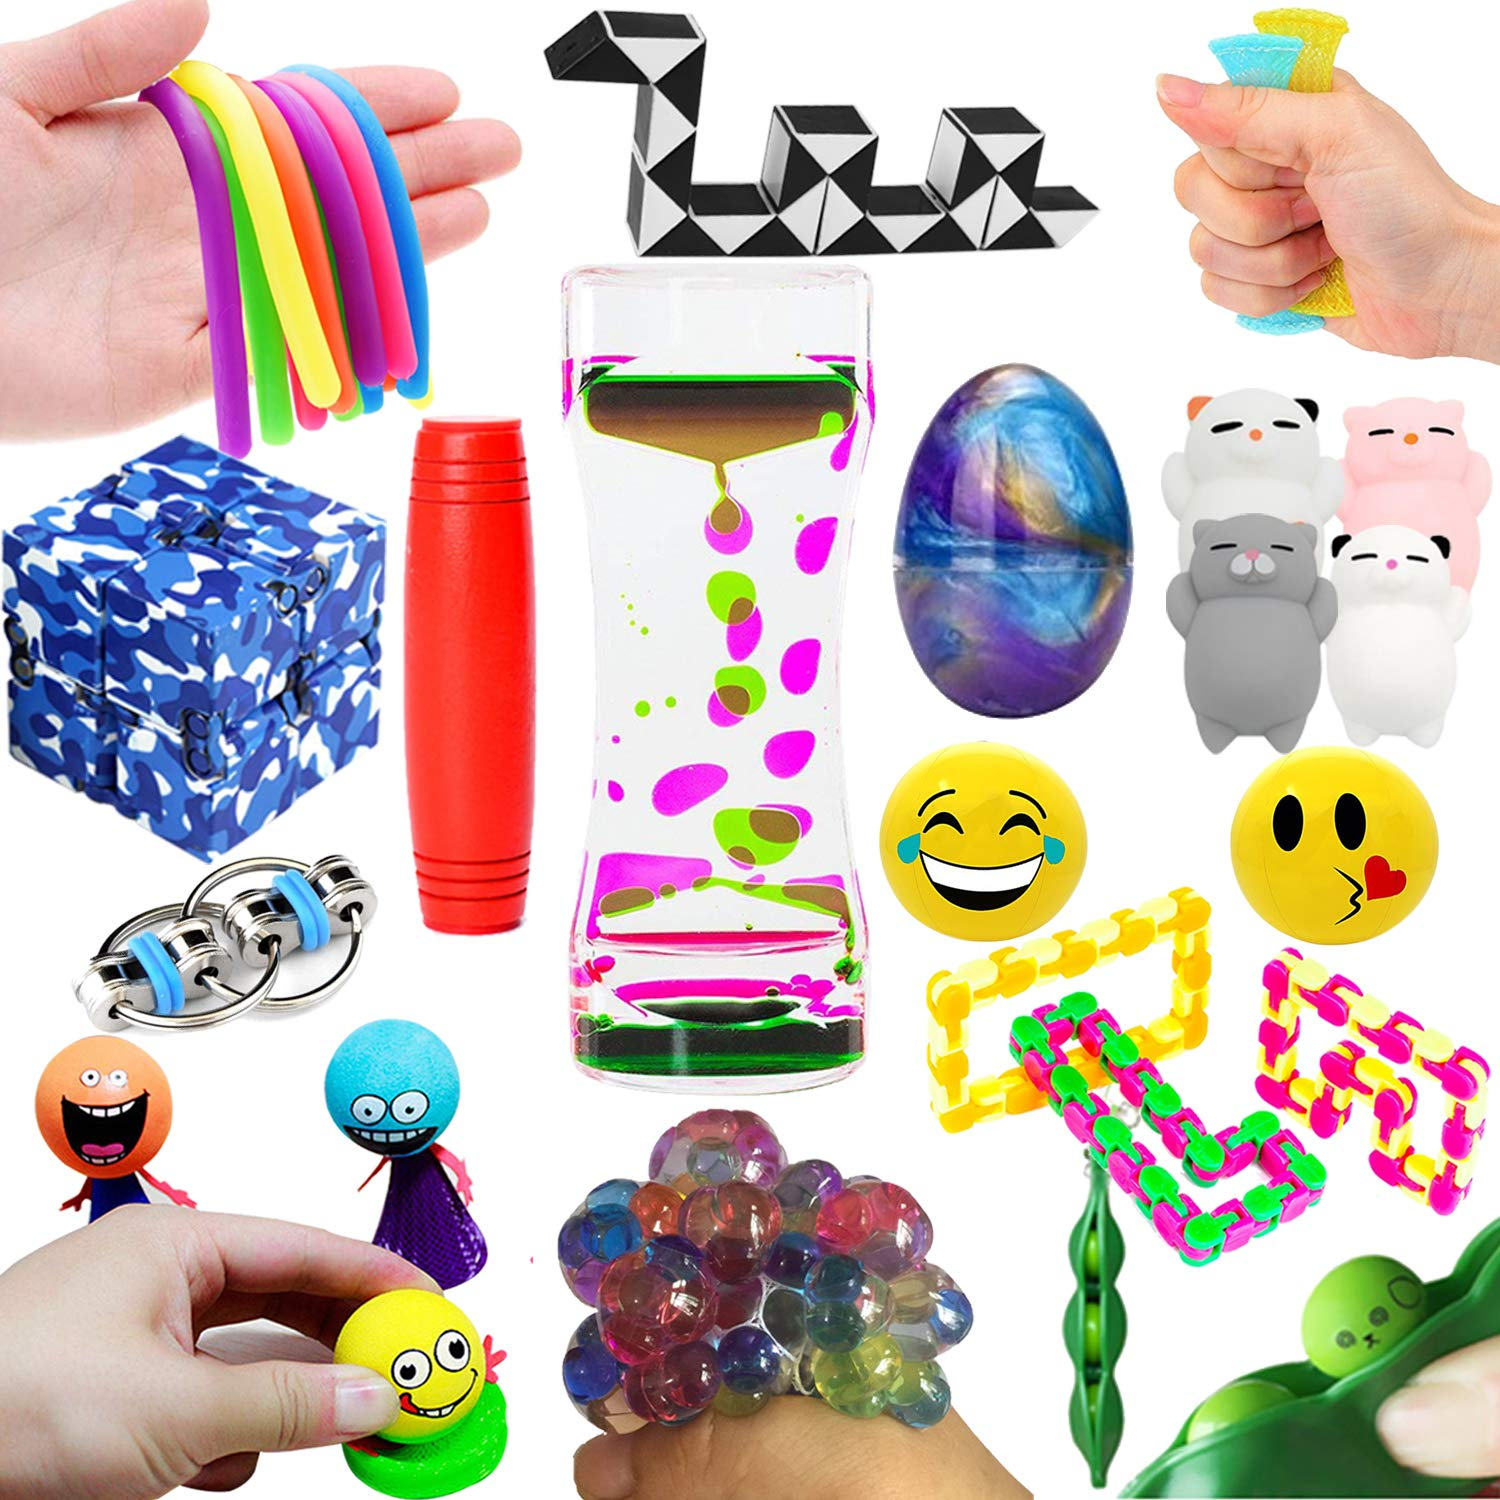 The Ultimate 14 Varieties 21 Packs Sensory Fidget Toys Kit Prime Mochi Squishies Toys/Infinity Cube/Emoji Stress/Squeeze Bean/Fidget Stick/Twisted Toy/Fidget Cube for Kids&Adult Add ADHD Stress Relax by Leeche